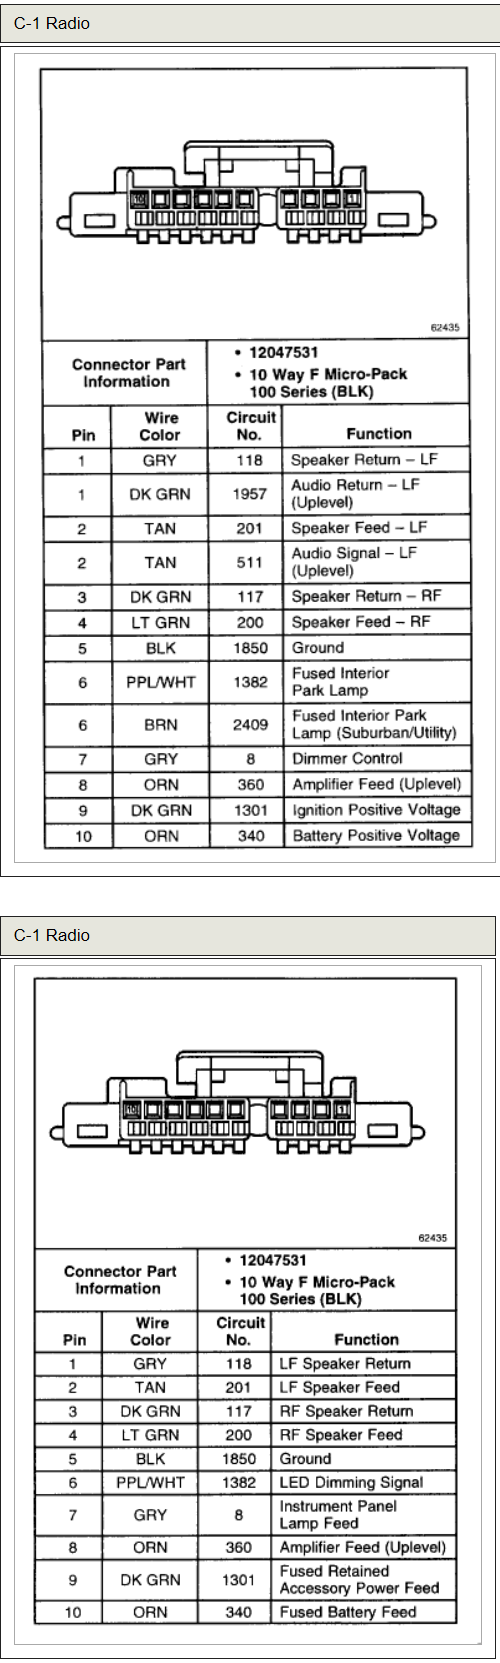 Chevrolet Tahoe LS 2000 stereo wiring connector 2 chevrolet car radio stereo audio wiring diagram autoradio 2002 chevrolet trailblazer radio wiring diagram at aneh.co